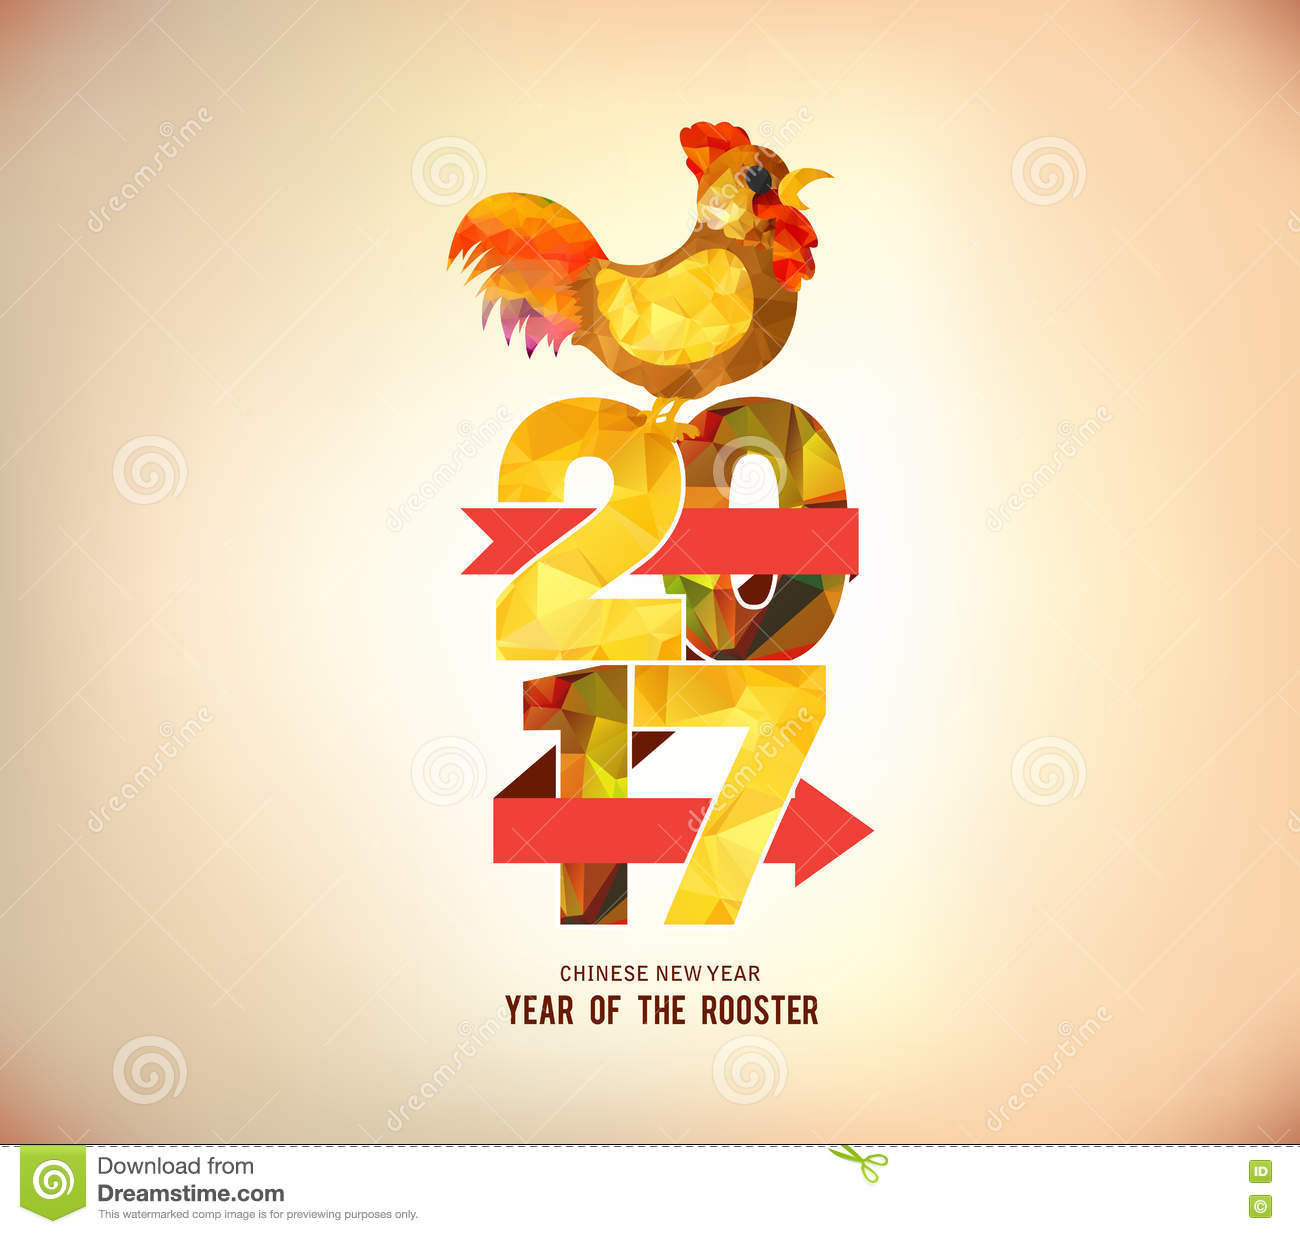 happy new year 2017 poster design with colorful triangle shape and